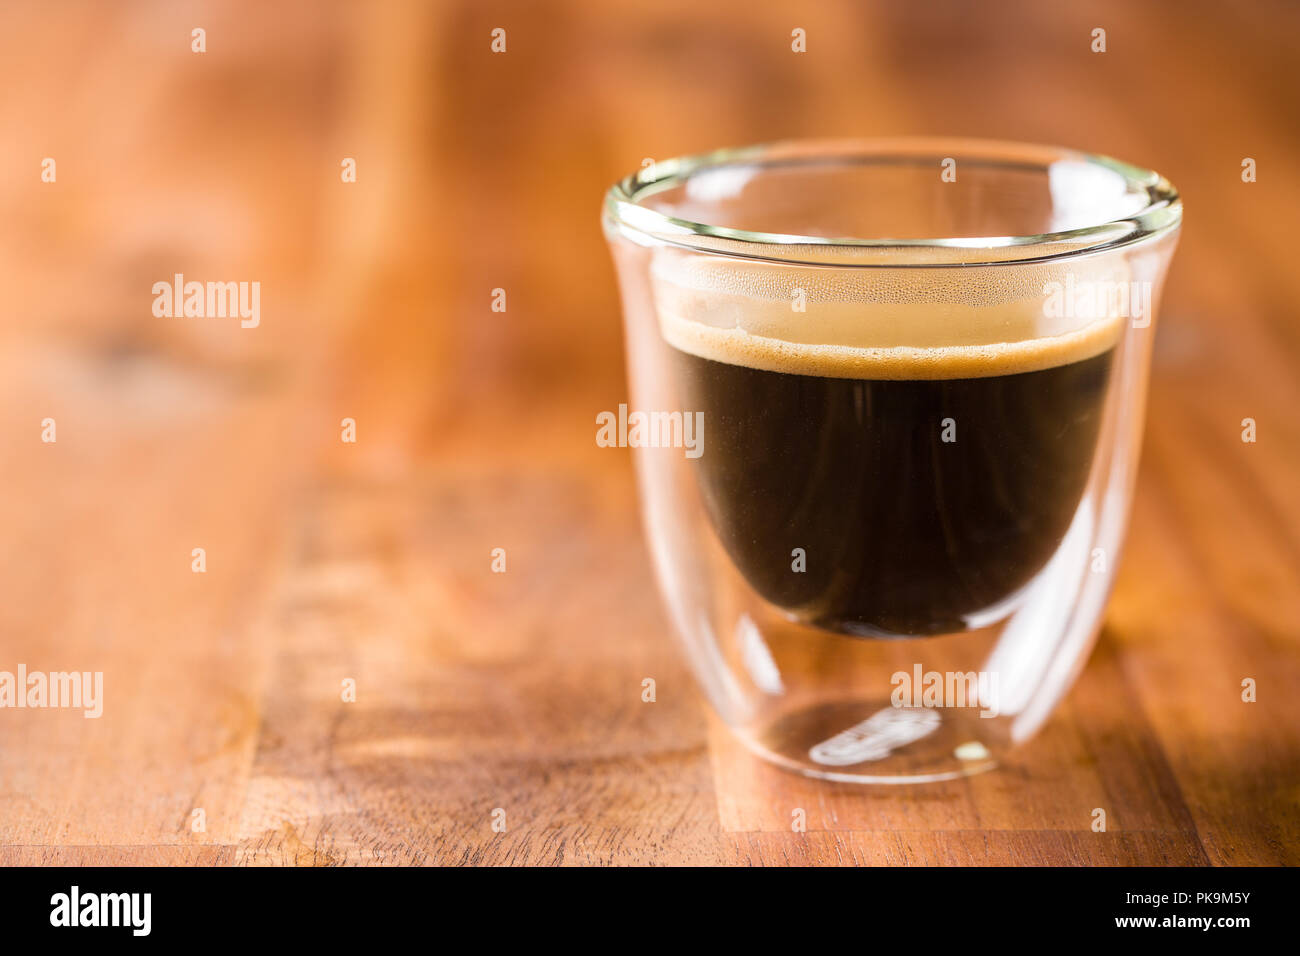 Cup of espresso coffee on wooden table. - Stock Image